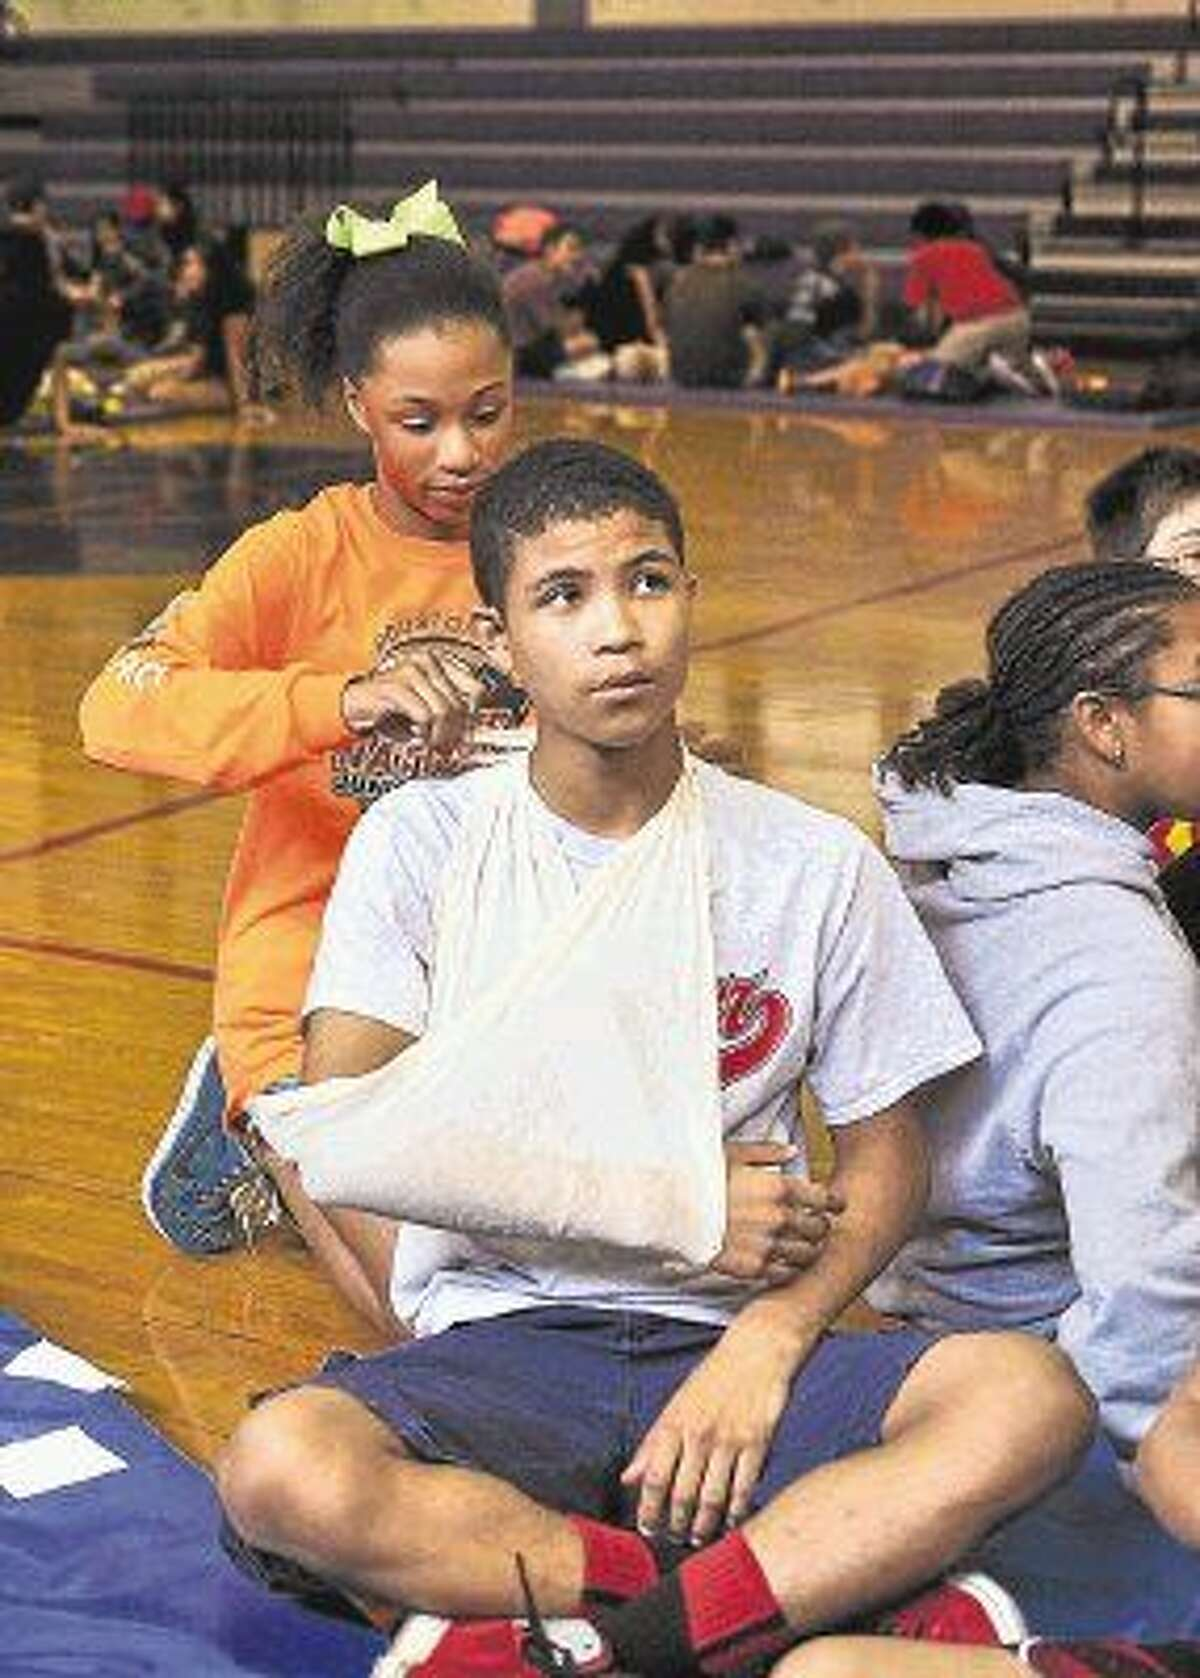 Lanier eighth-graders learned basic first aid as part of their week-long Guidance and Support Group training this summer.